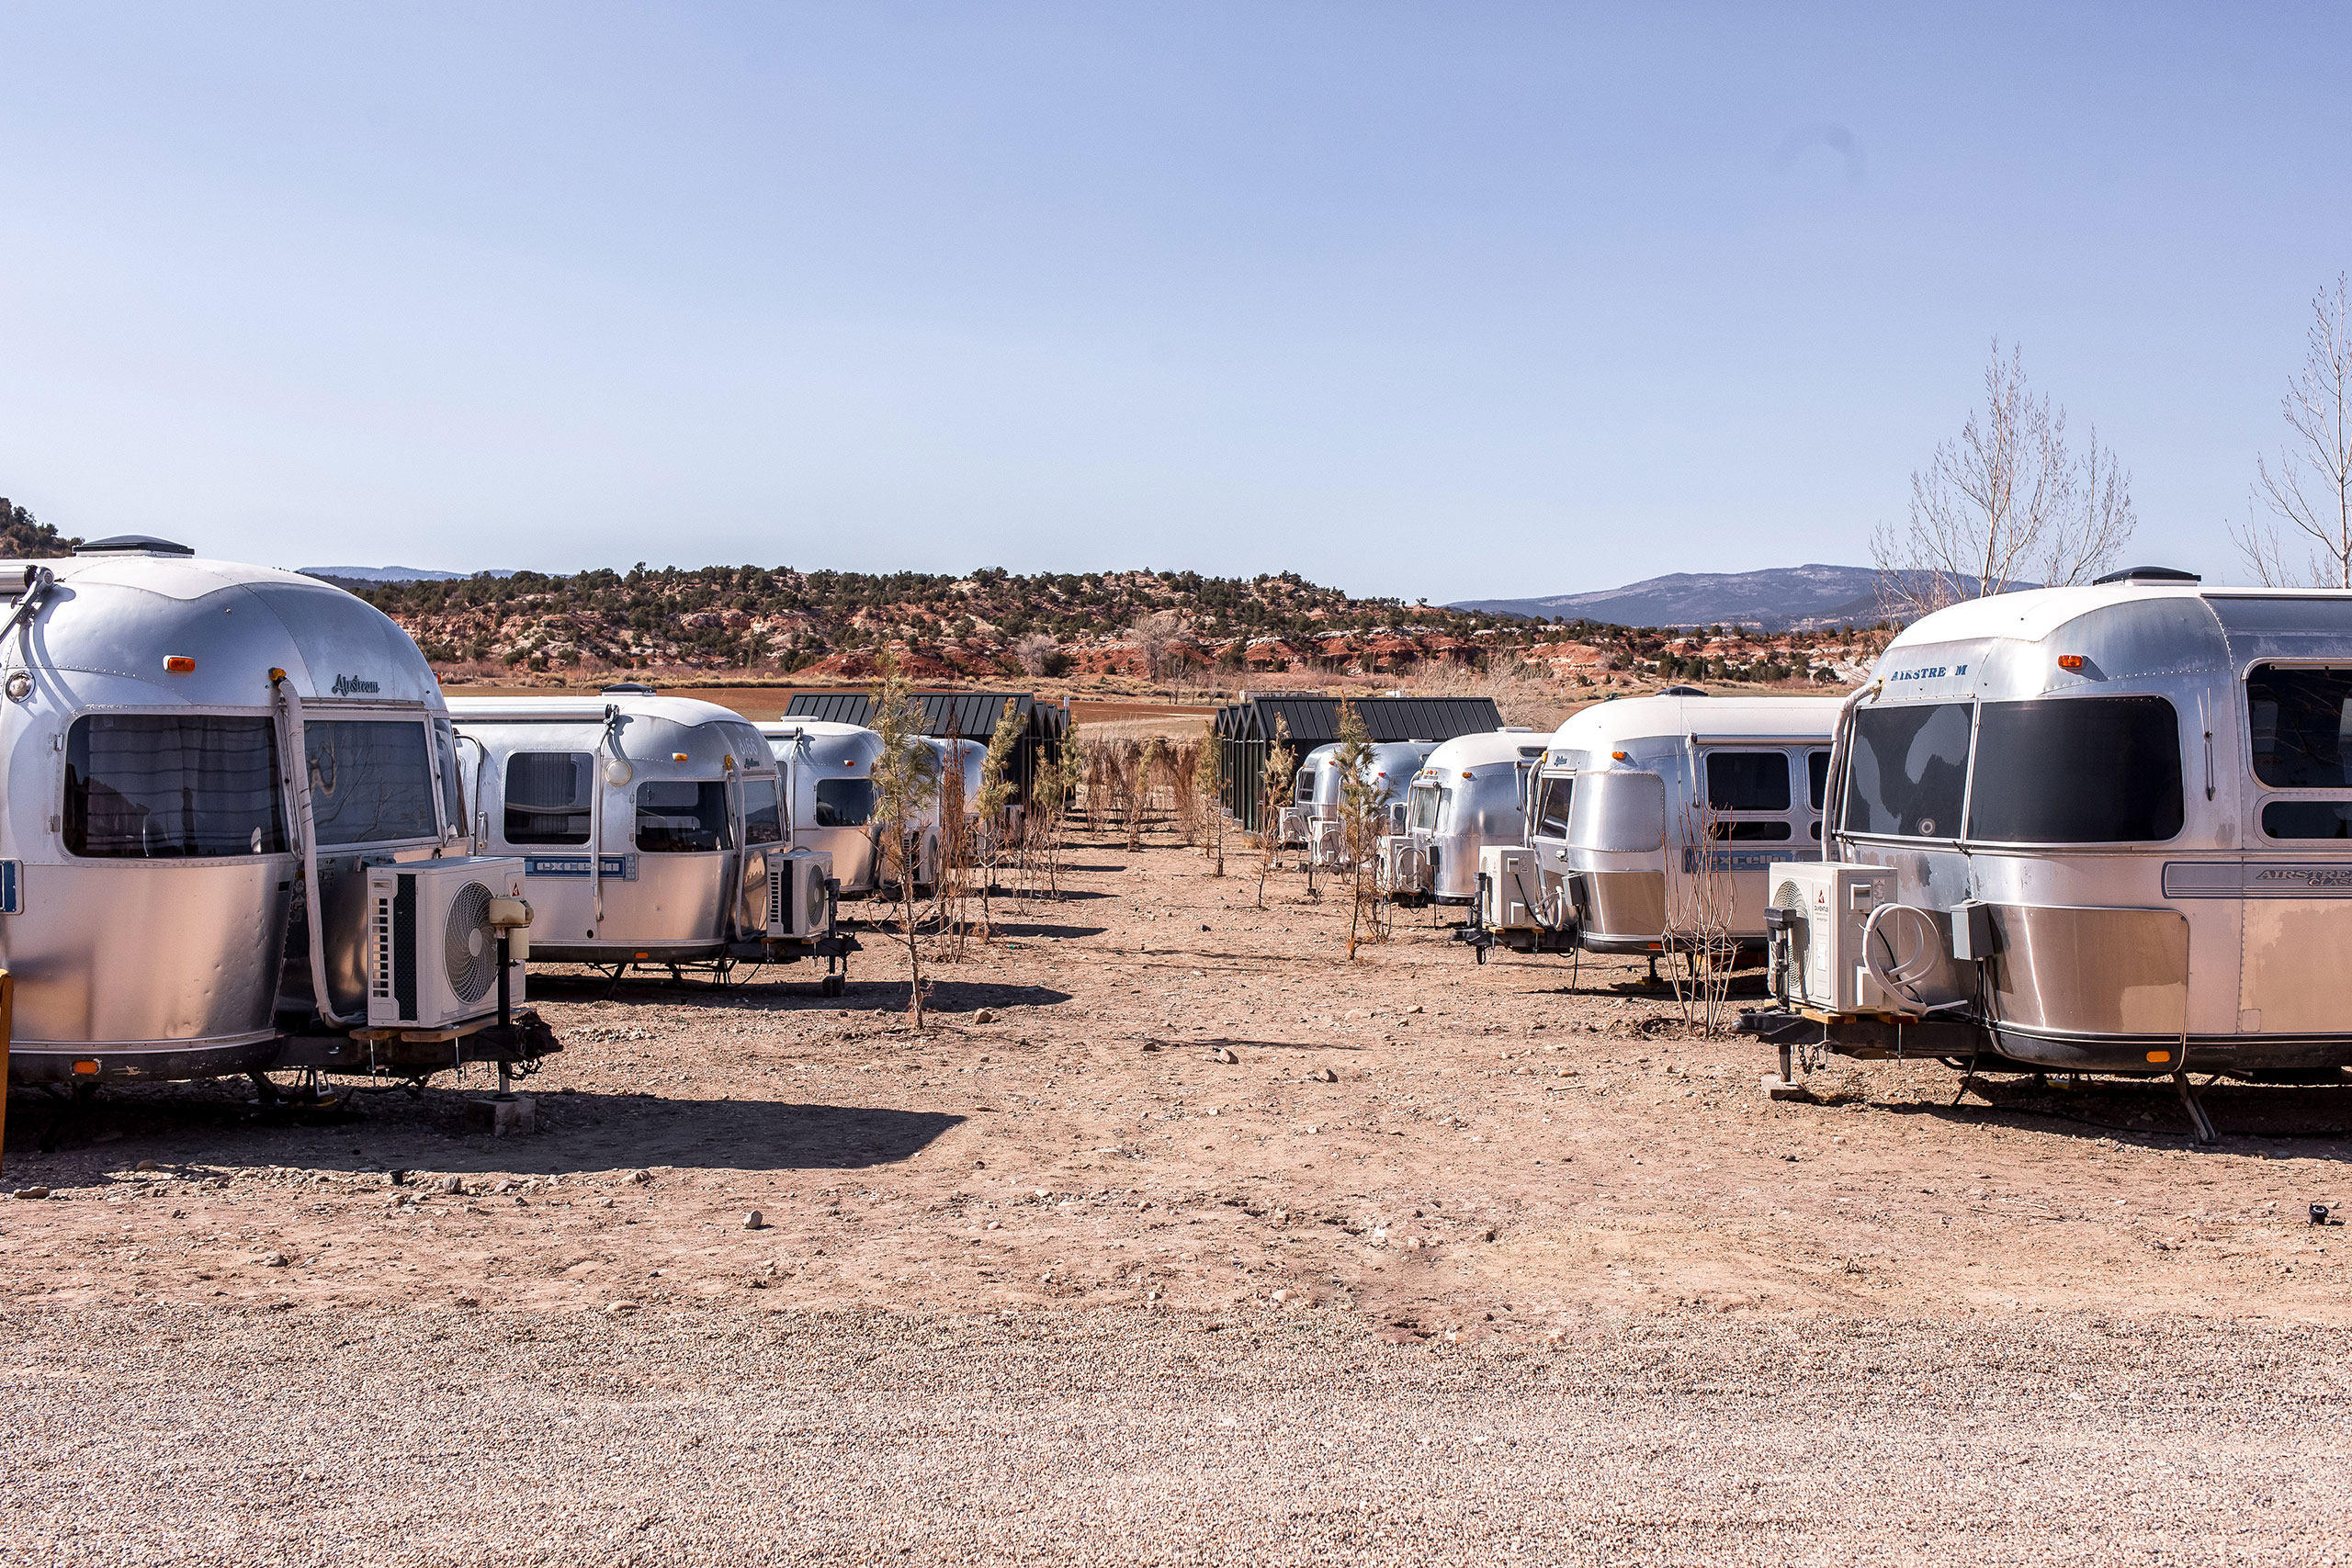 Airstreams.Photography by Aleks Danielle Butman.